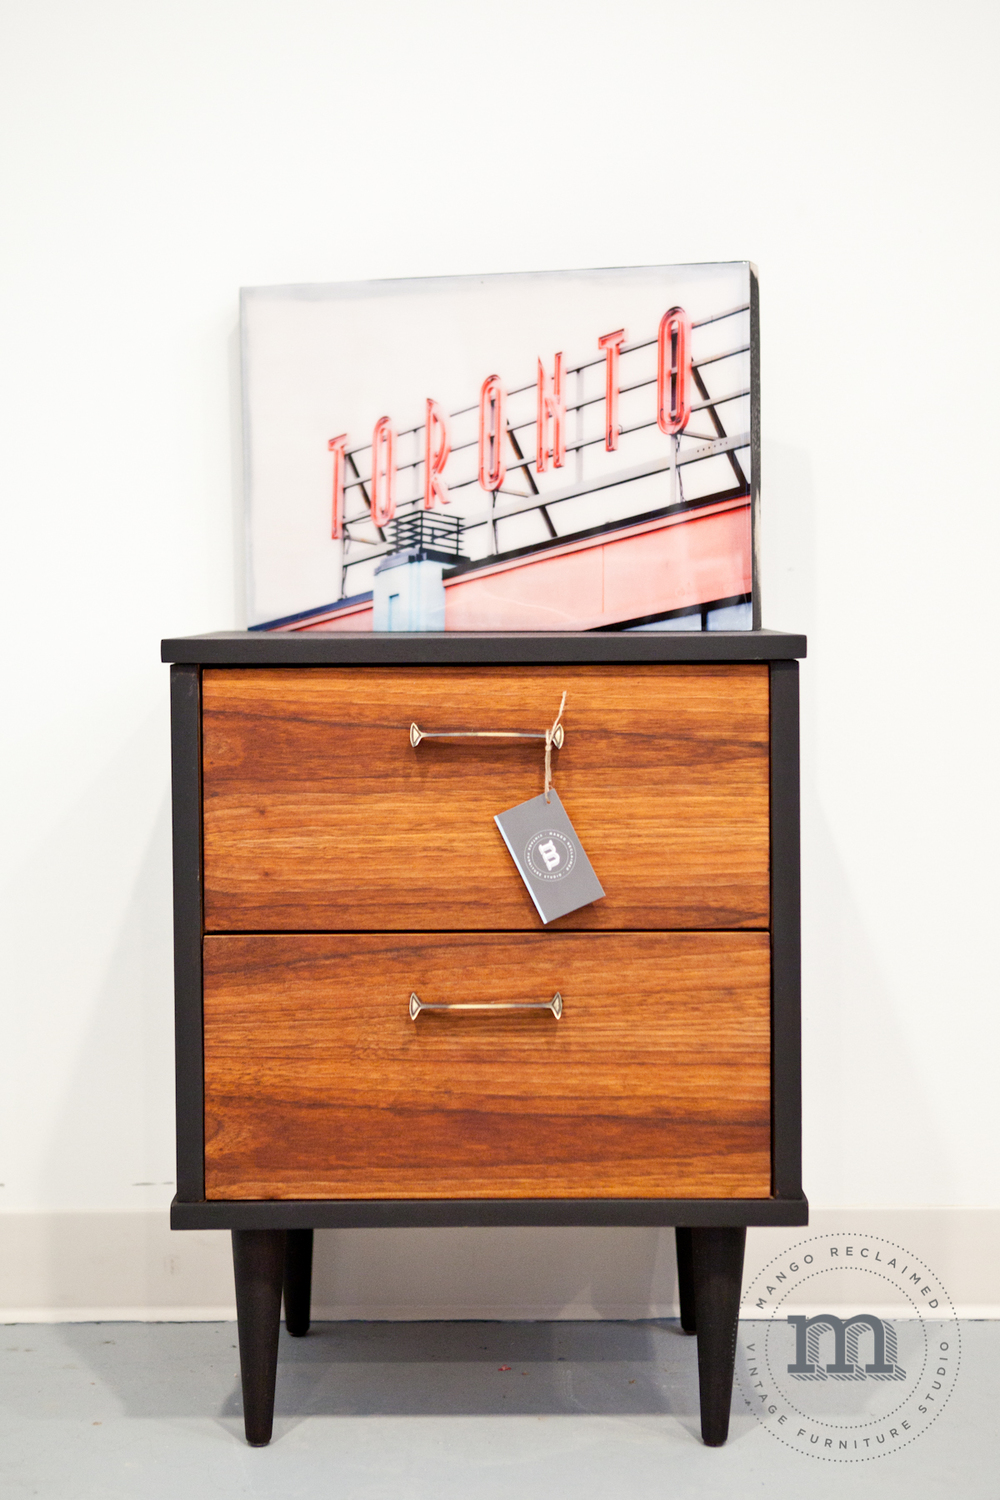 39 mad men 39 restyled side table mango reclaimed for Table 52 2014